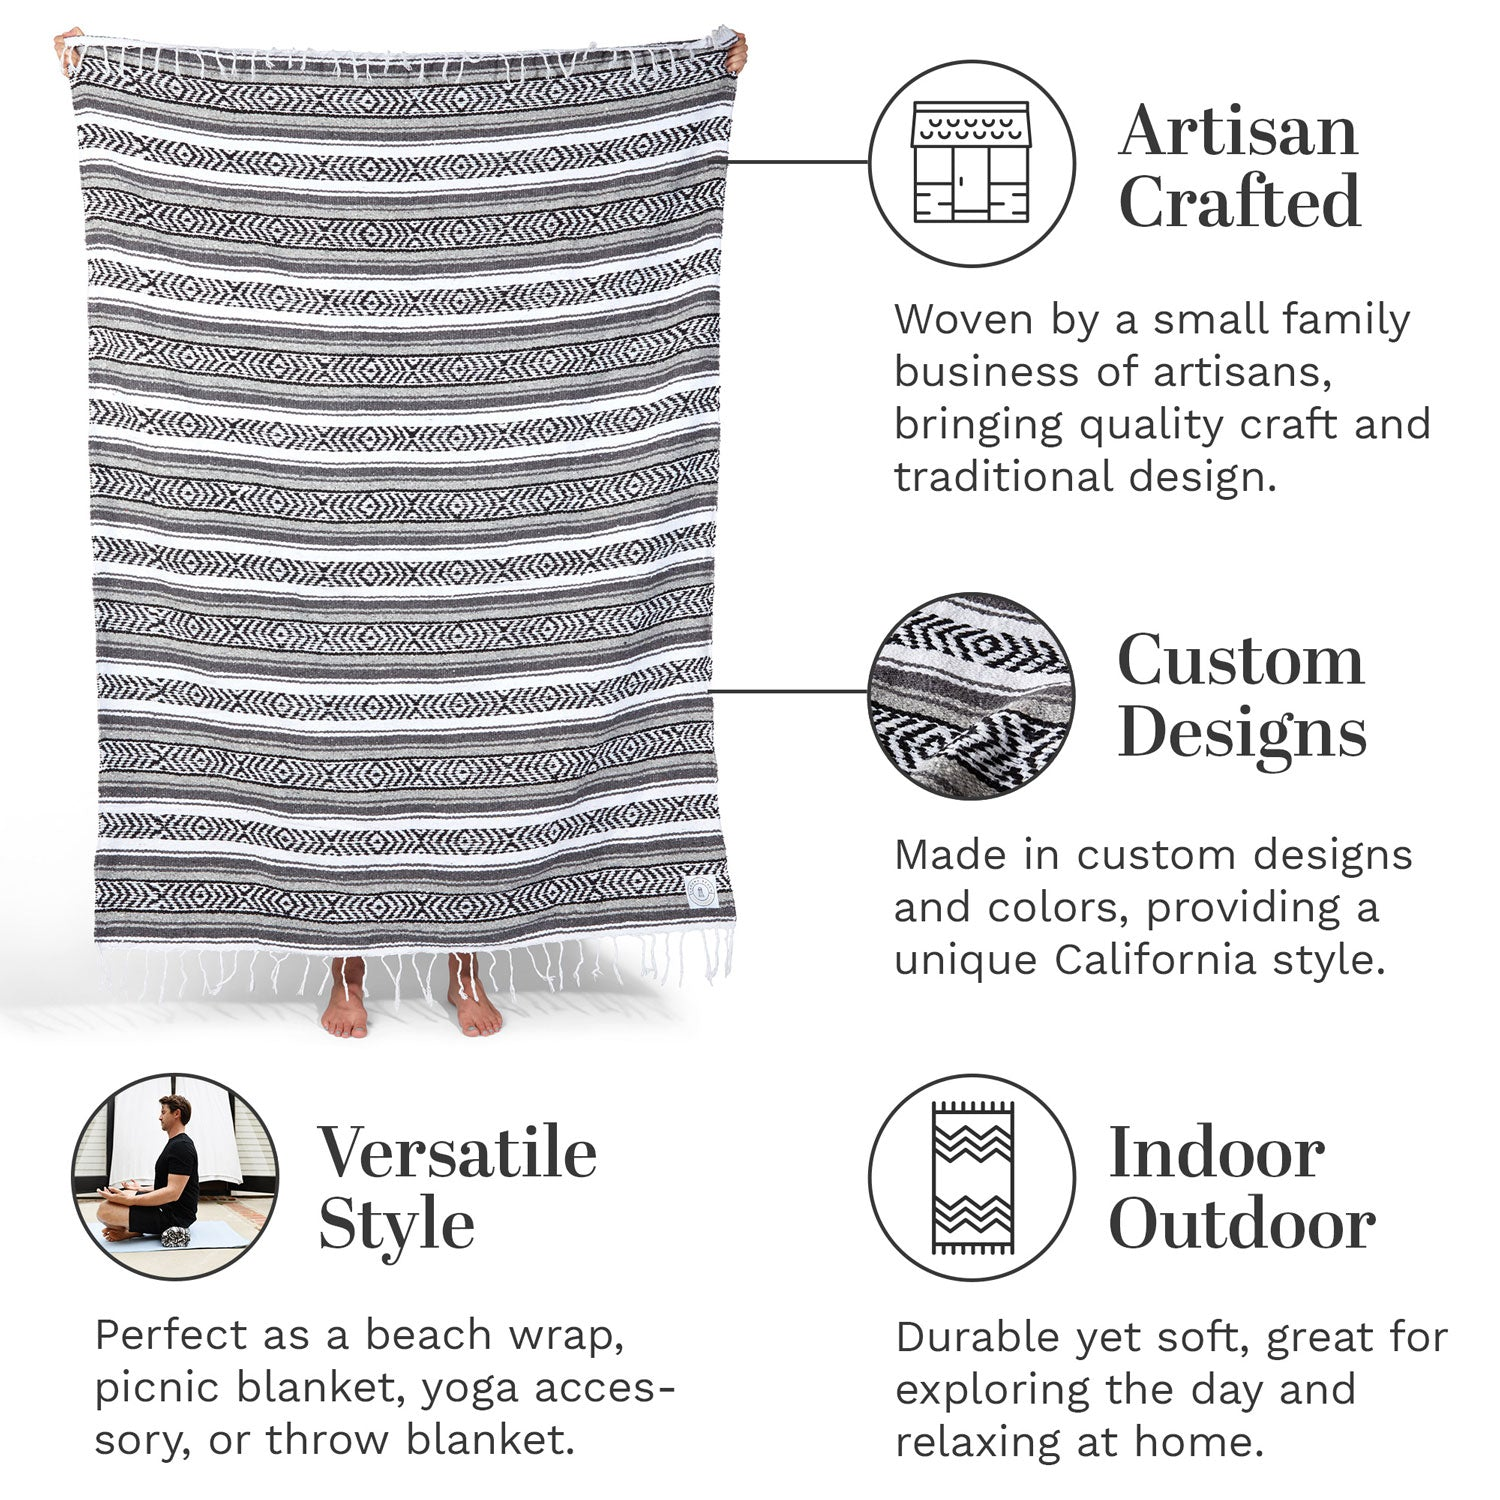 Infographic of our gray and white Mexican blanket highlighting its versatile style and artisan craftsmanship.